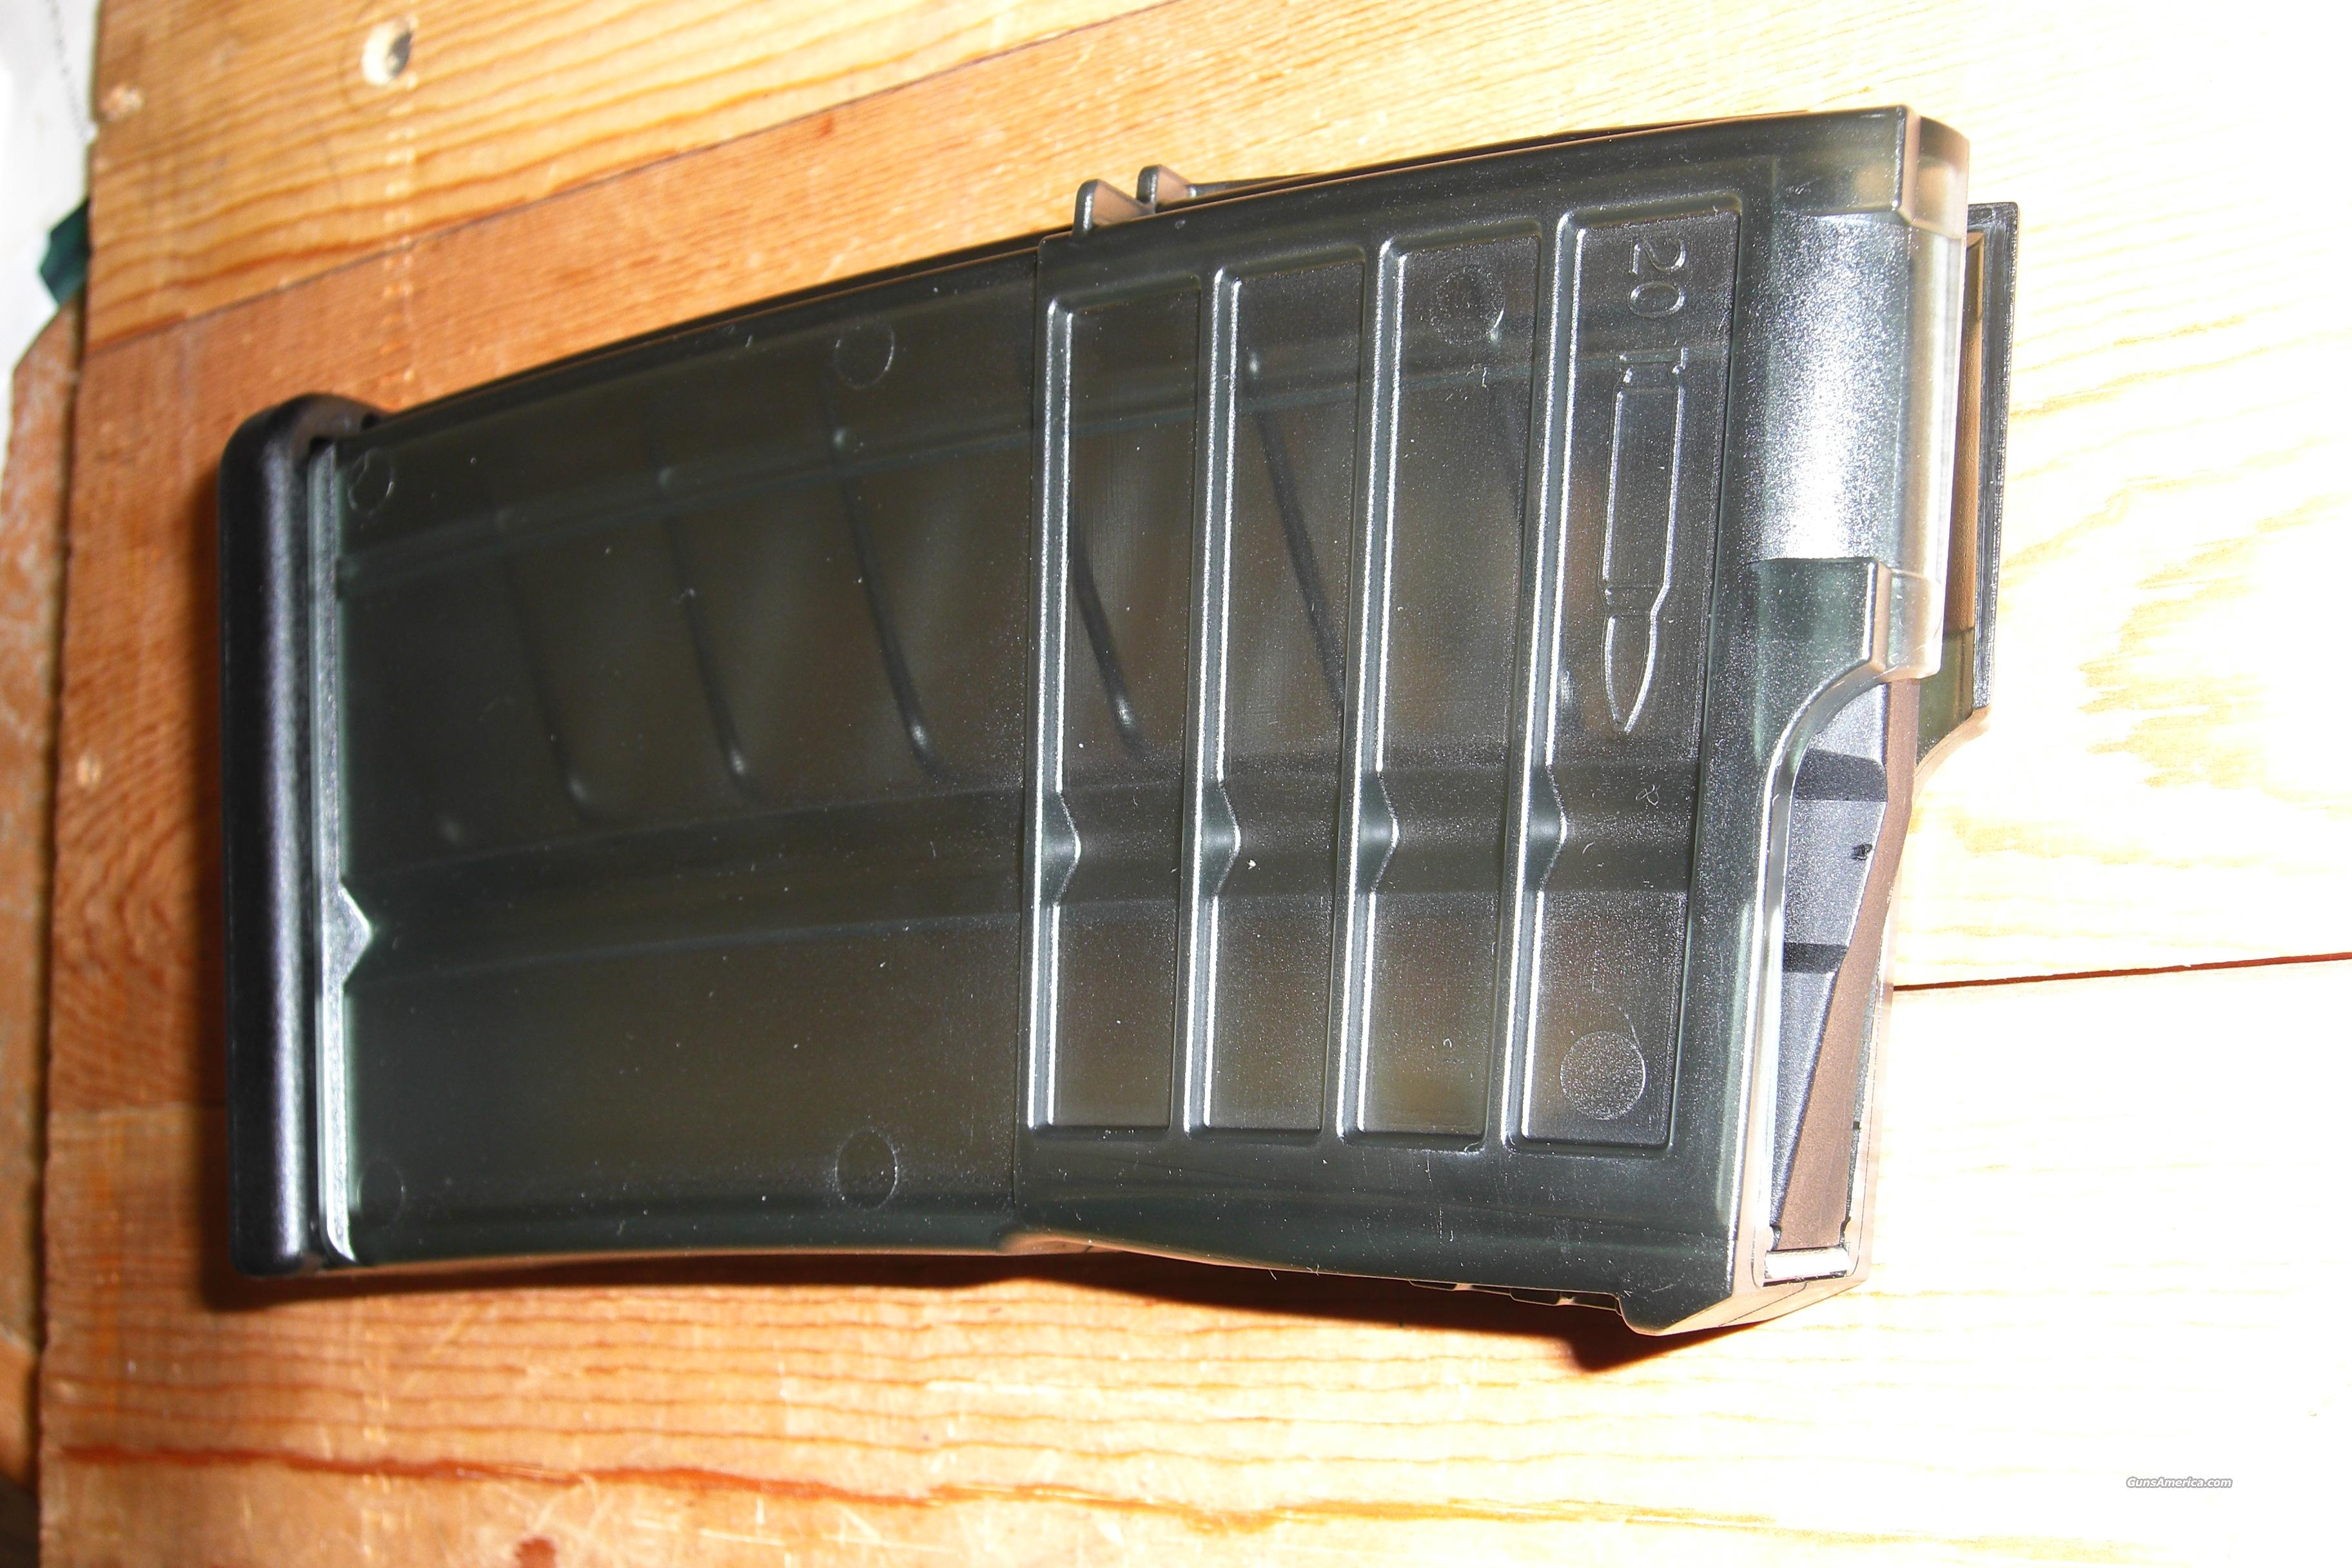 HK417 or MR 7.62 20 round magazine  Non-Guns > Magazines & Clips > Rifle Magazines > HK/CETME